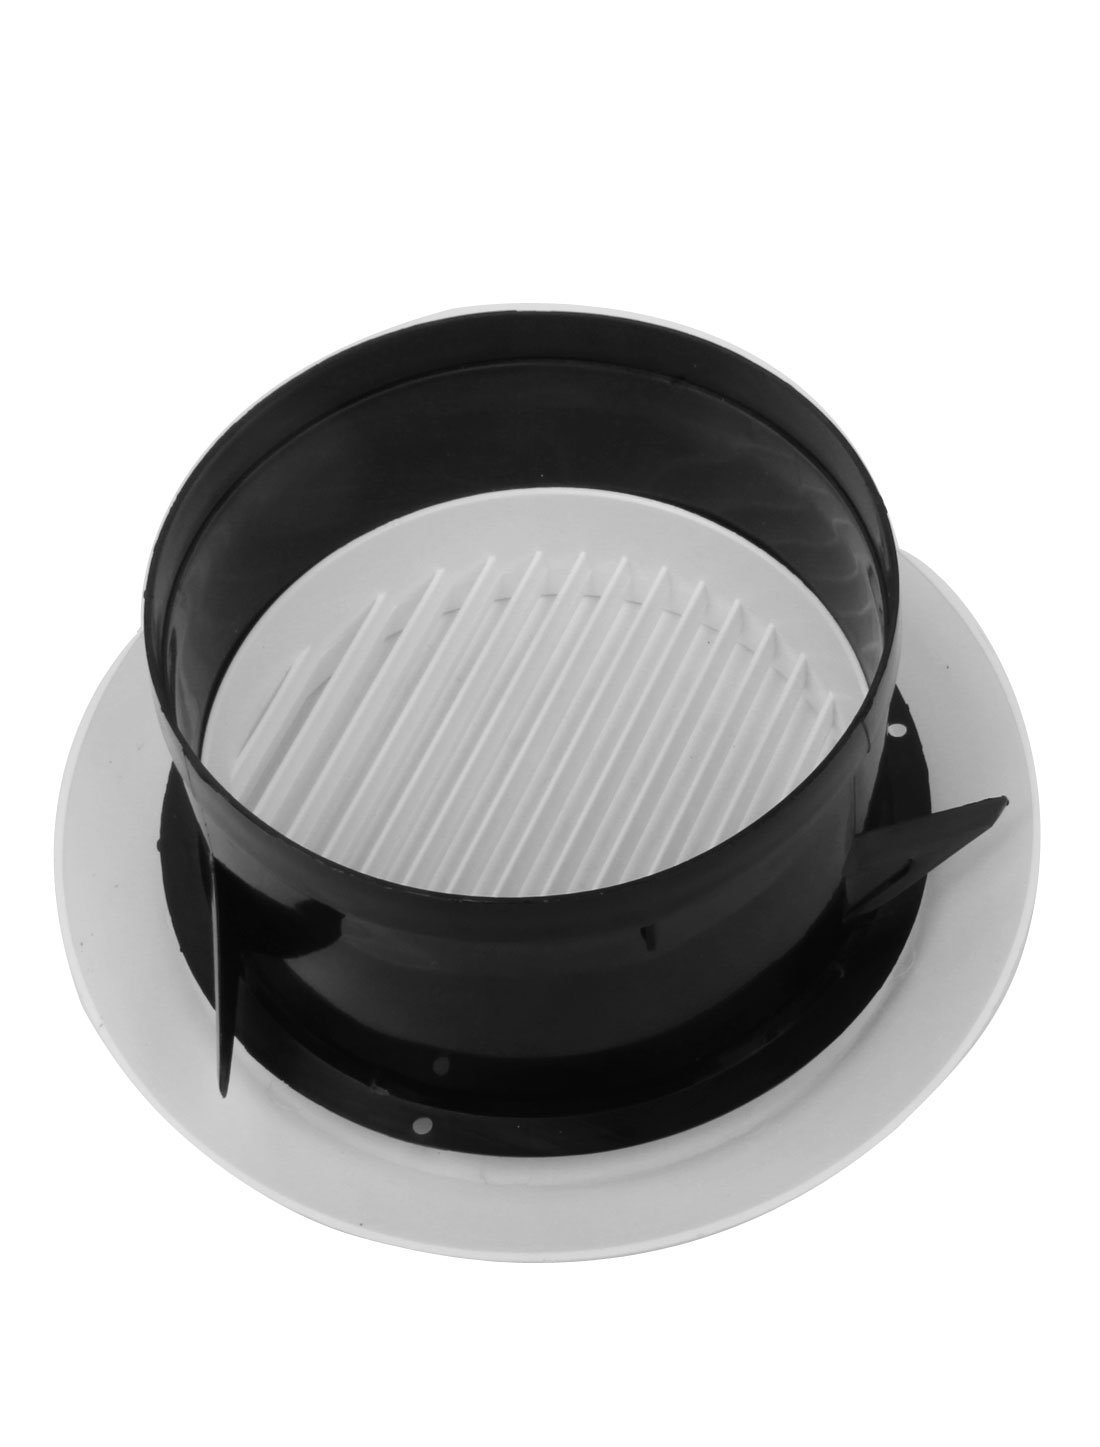 DealMux Extractor Fan 150mm Mount Dia ABS Ventilation Grill Ceiling Air Vent